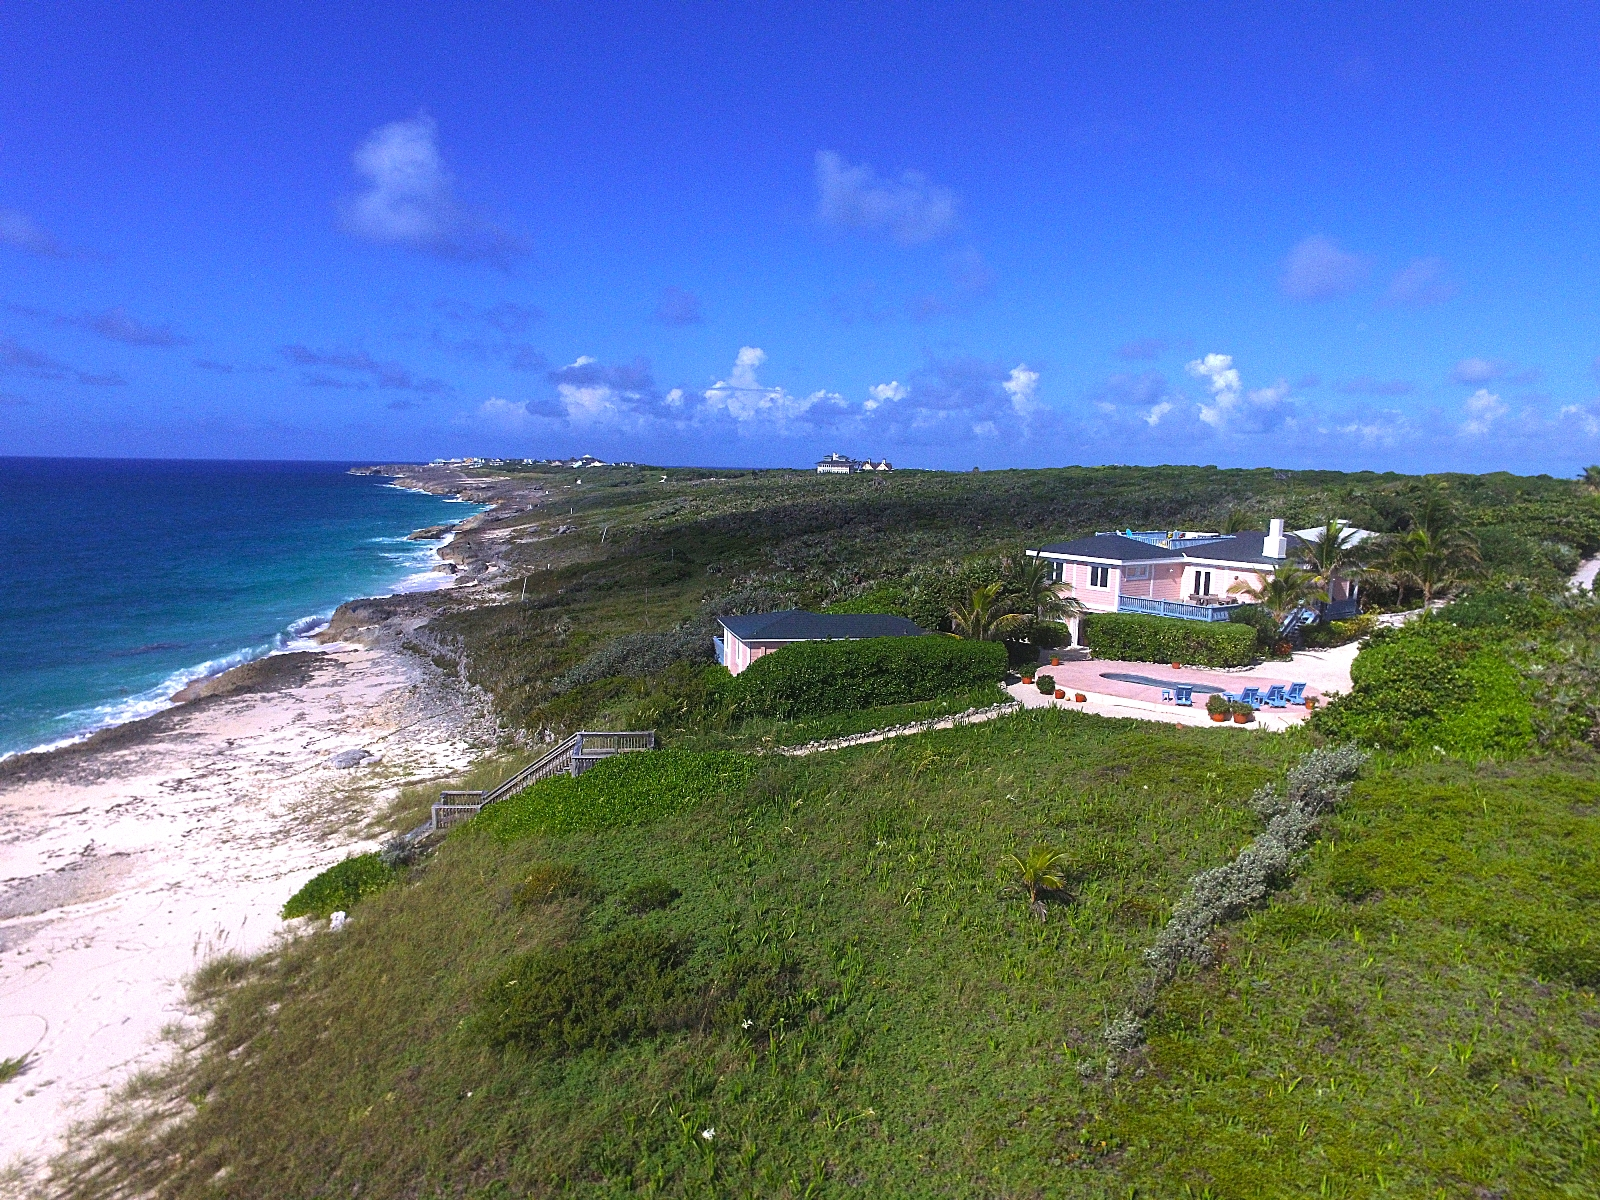 Частный дом для того Продажа на Walking Stick, a 2.2.Acre Atlantic Estate at The Abaco Club on Winding Bay MLS-27717 Abaco, Багамские Острова